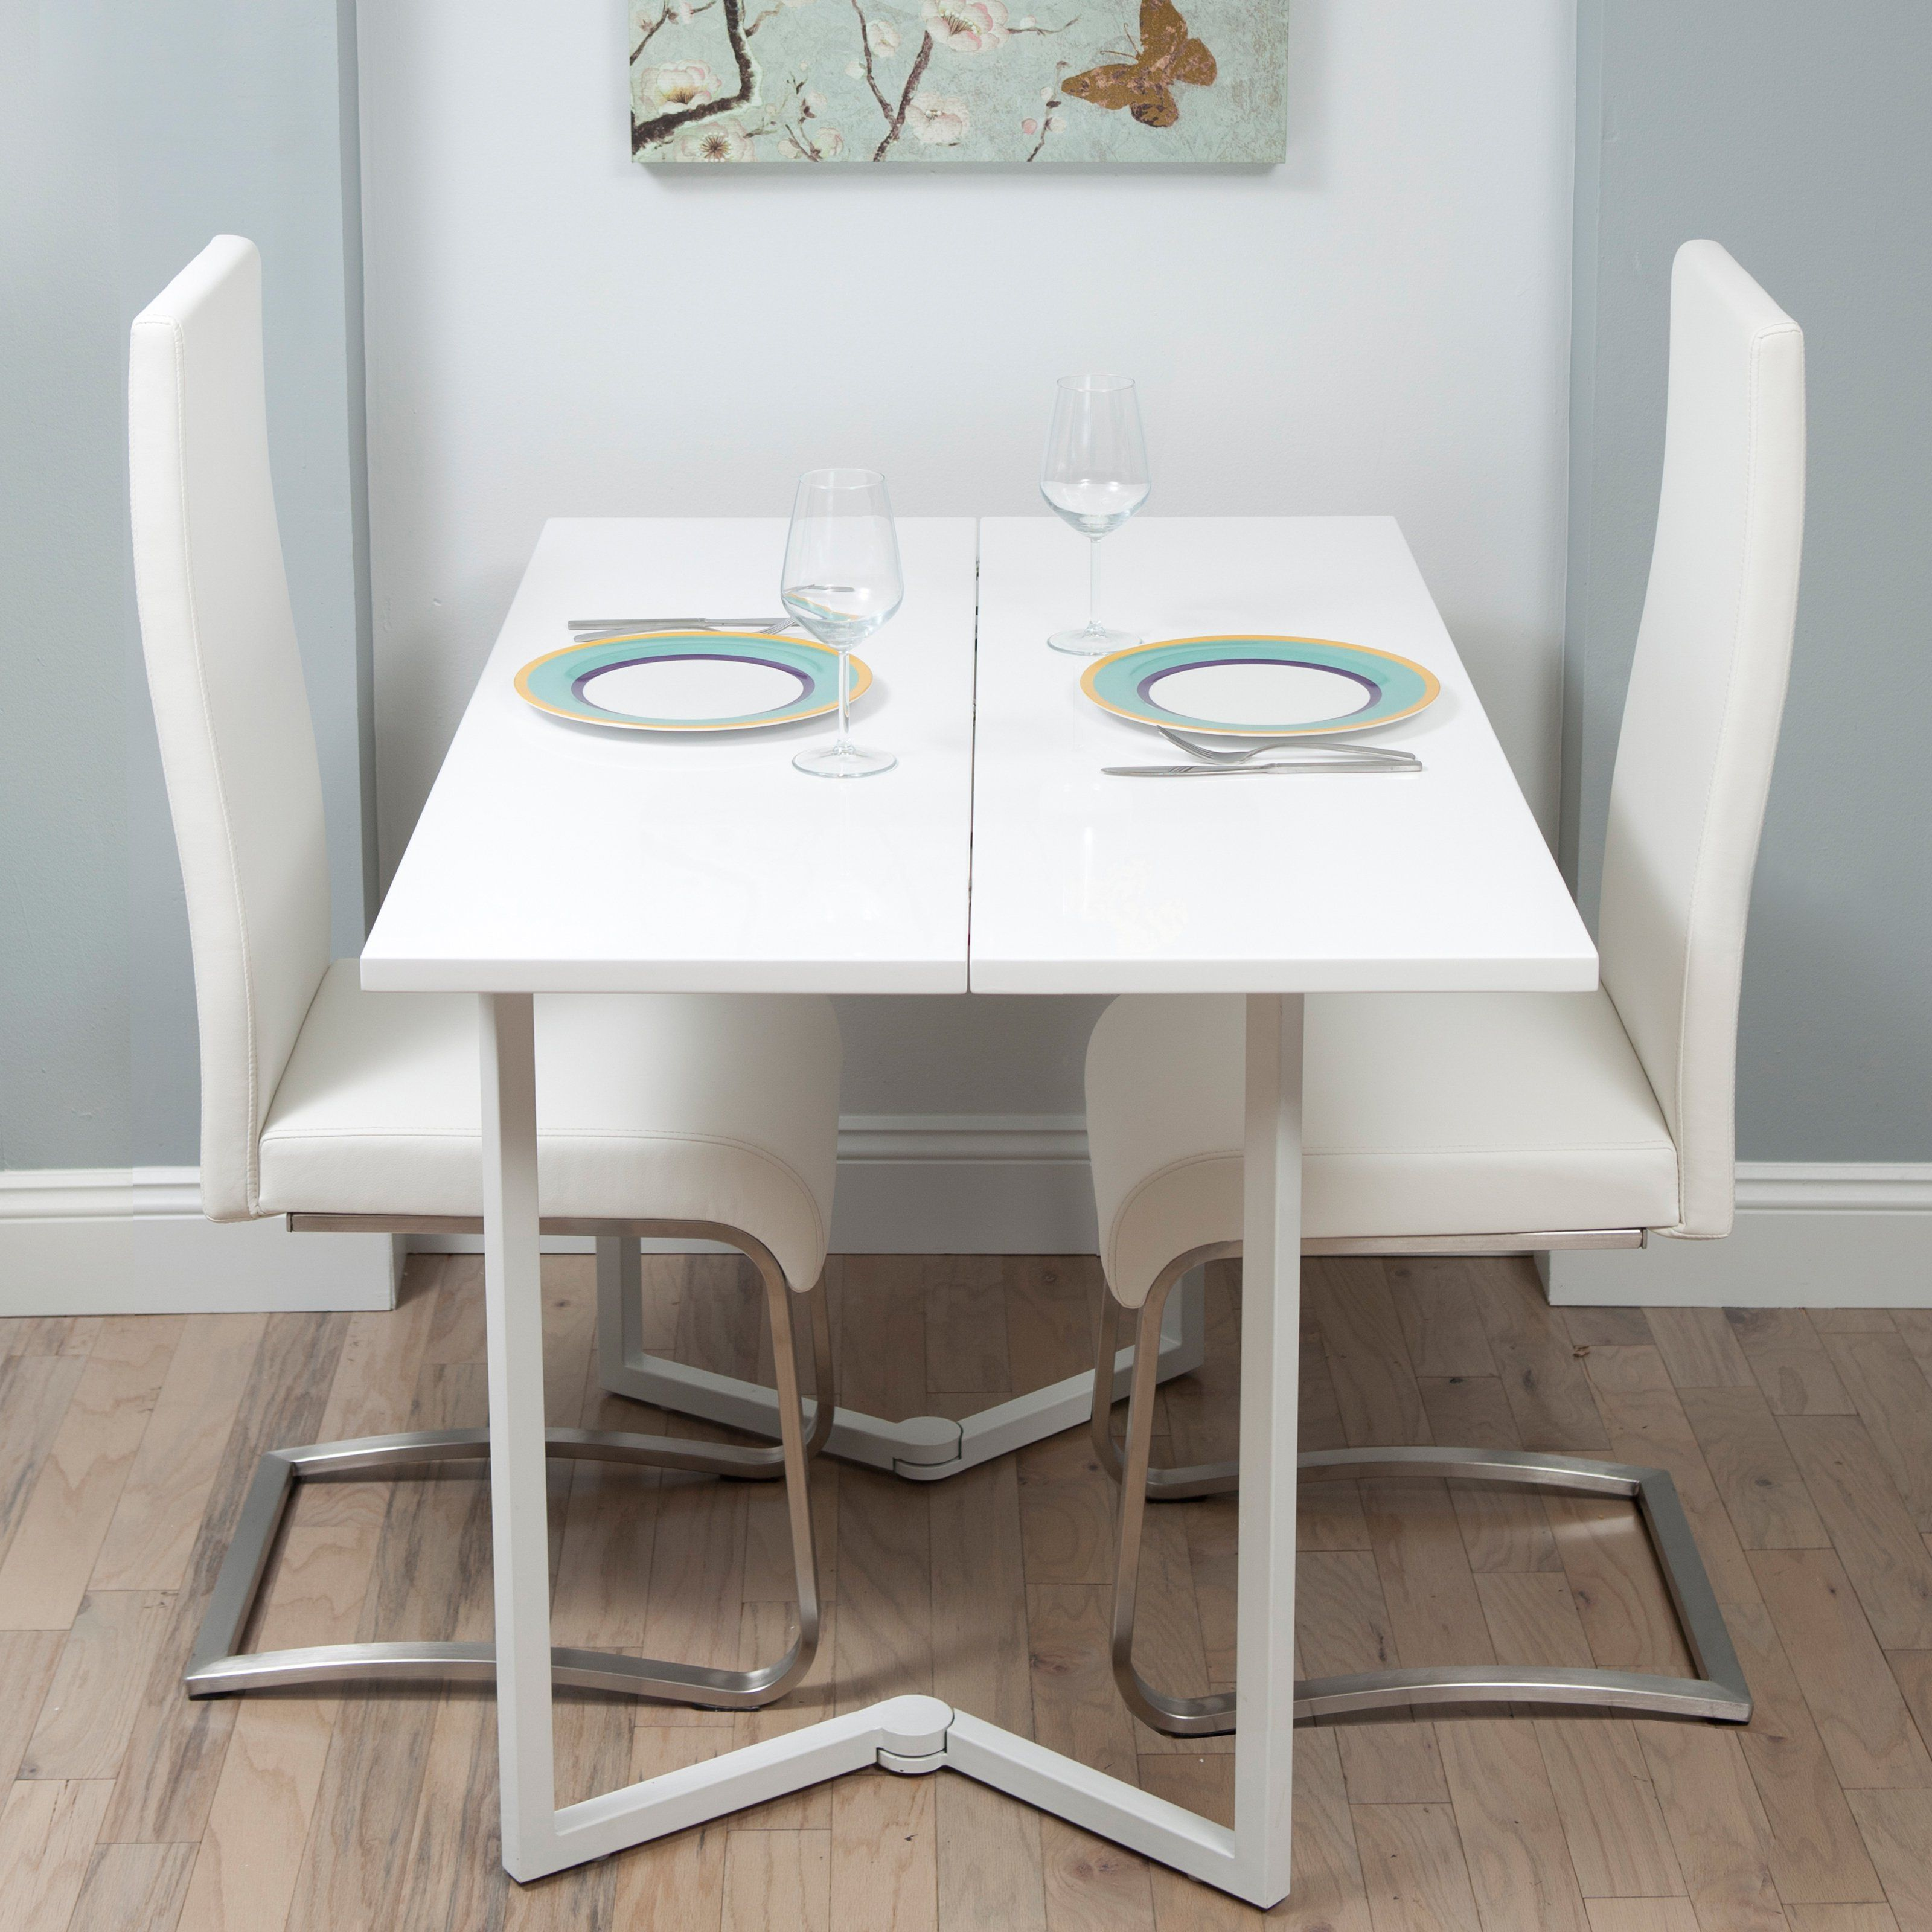 Attirant Folding Dining Table And Chairs   Http://www.rebeccacober.net/